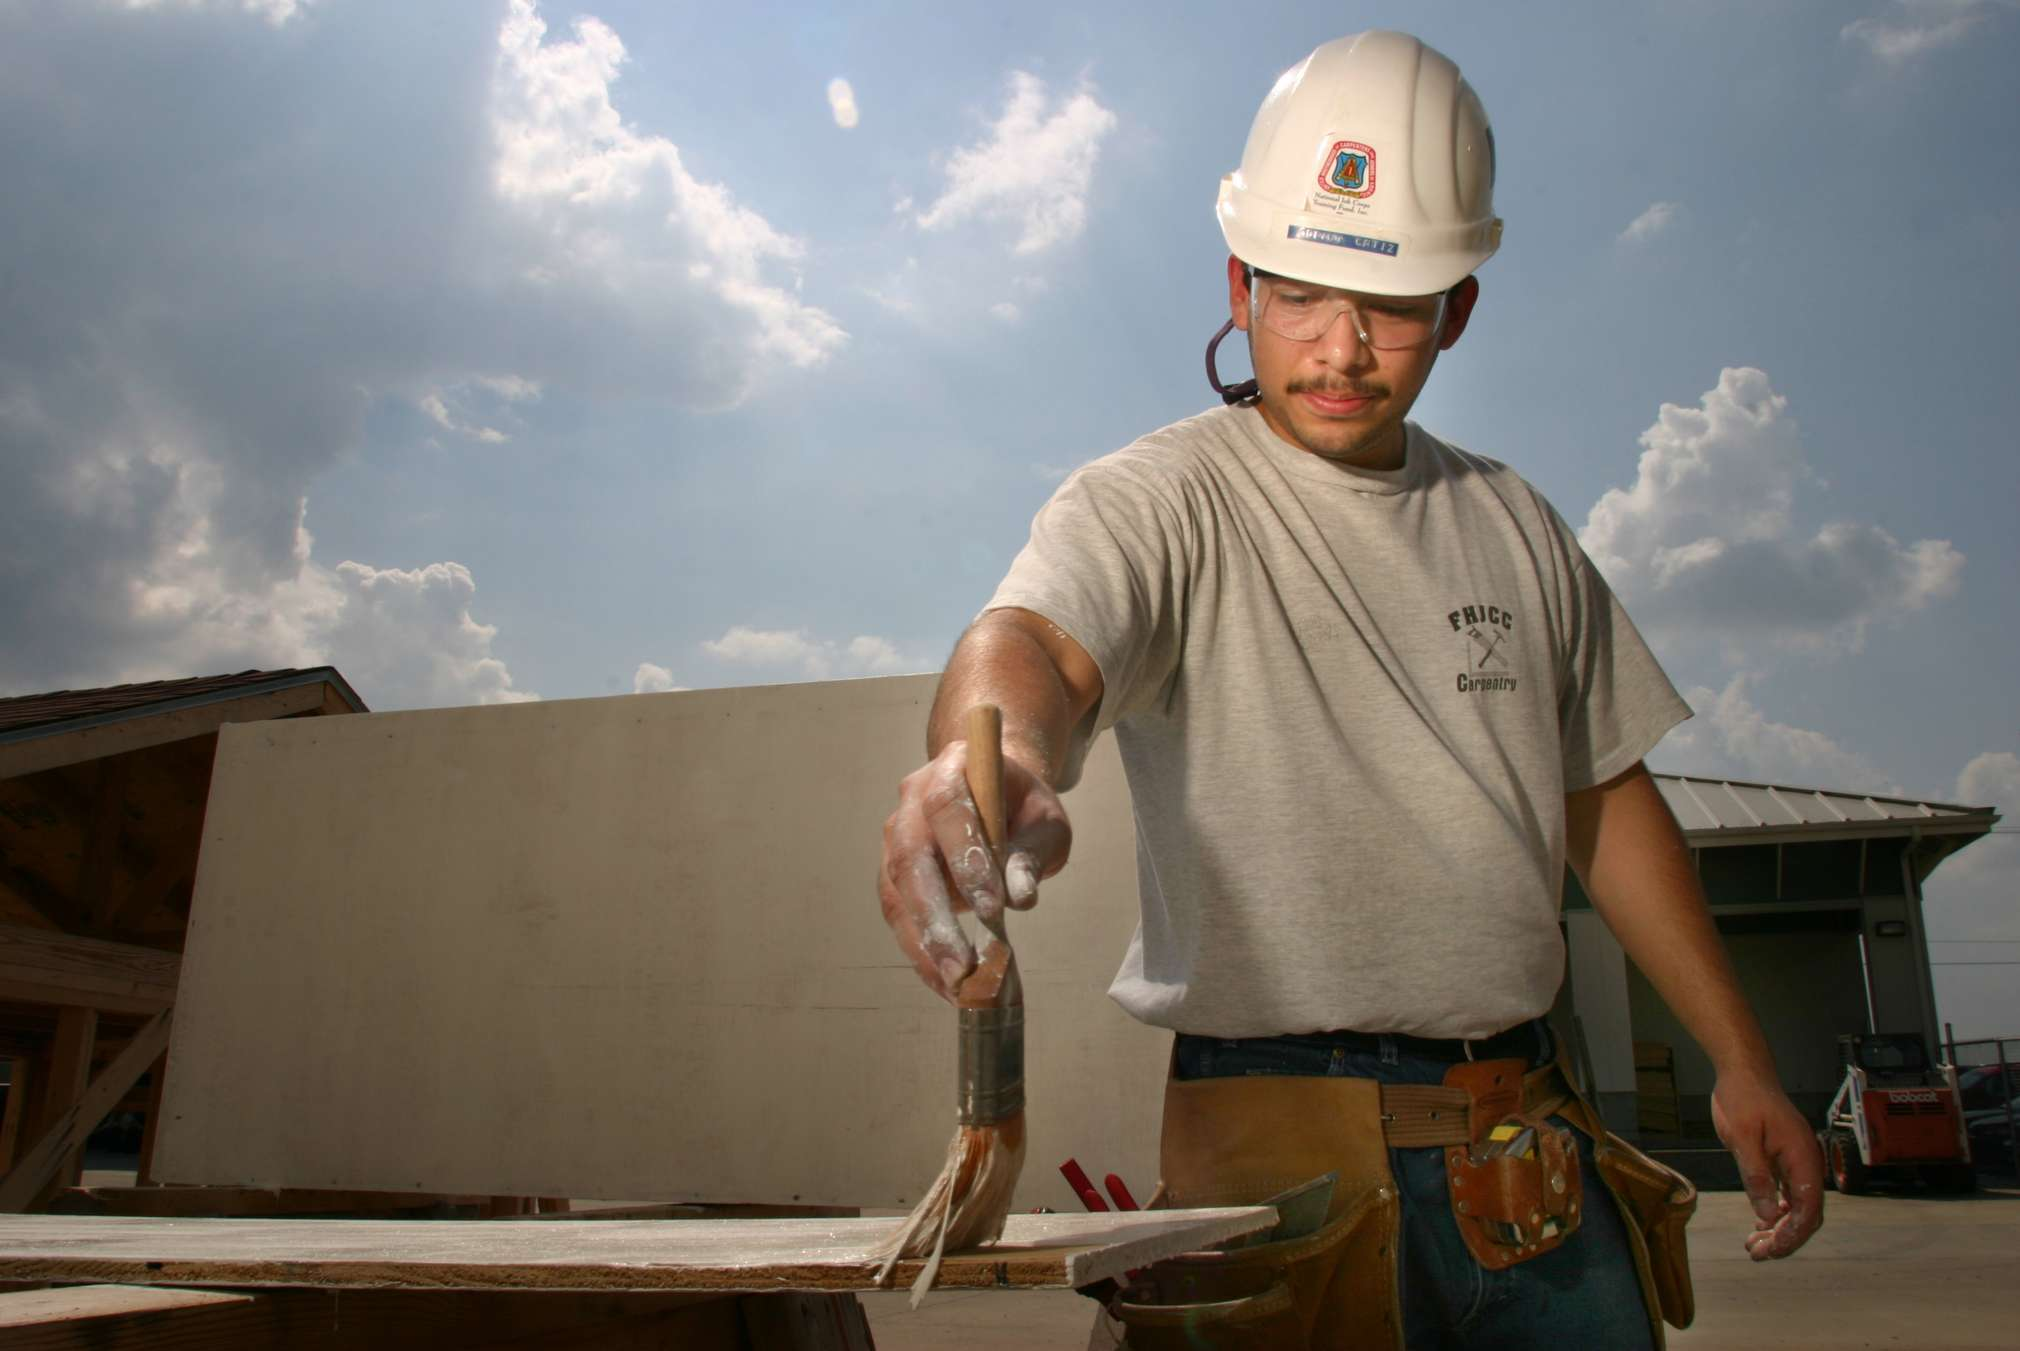 young man in a hard hat painting a board